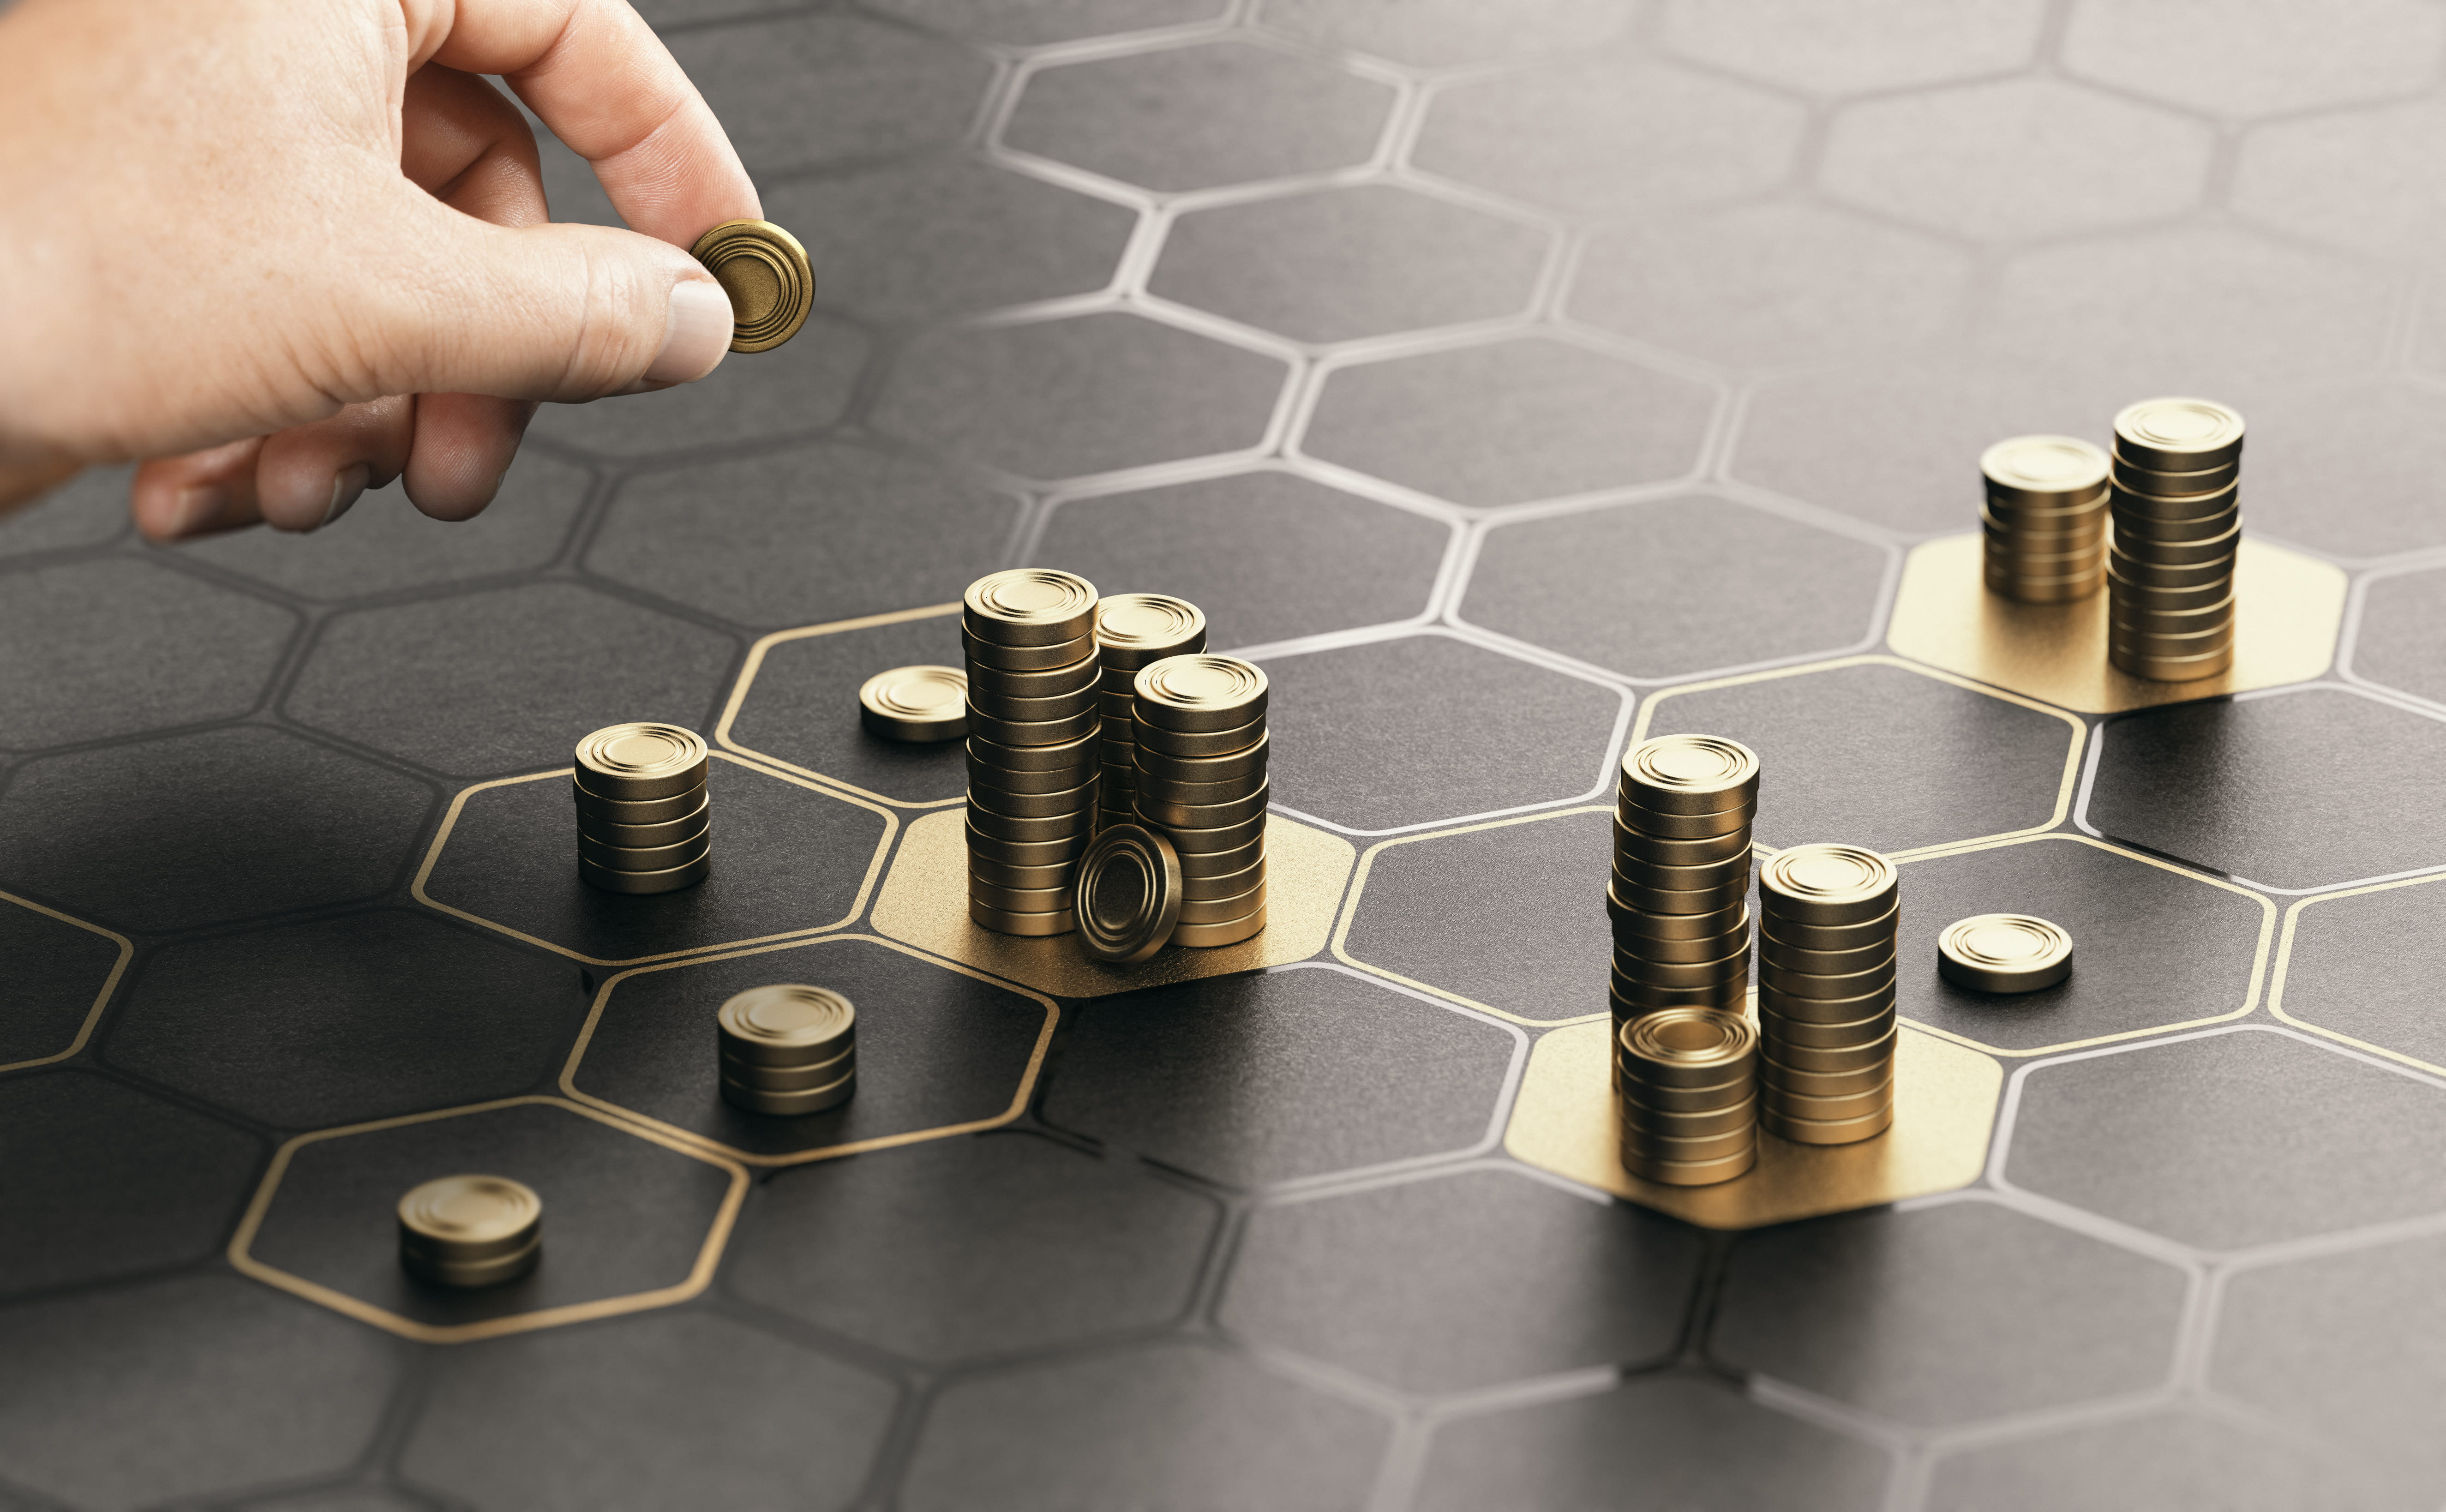 person stacking gold coins on black background with hexagonal shapes